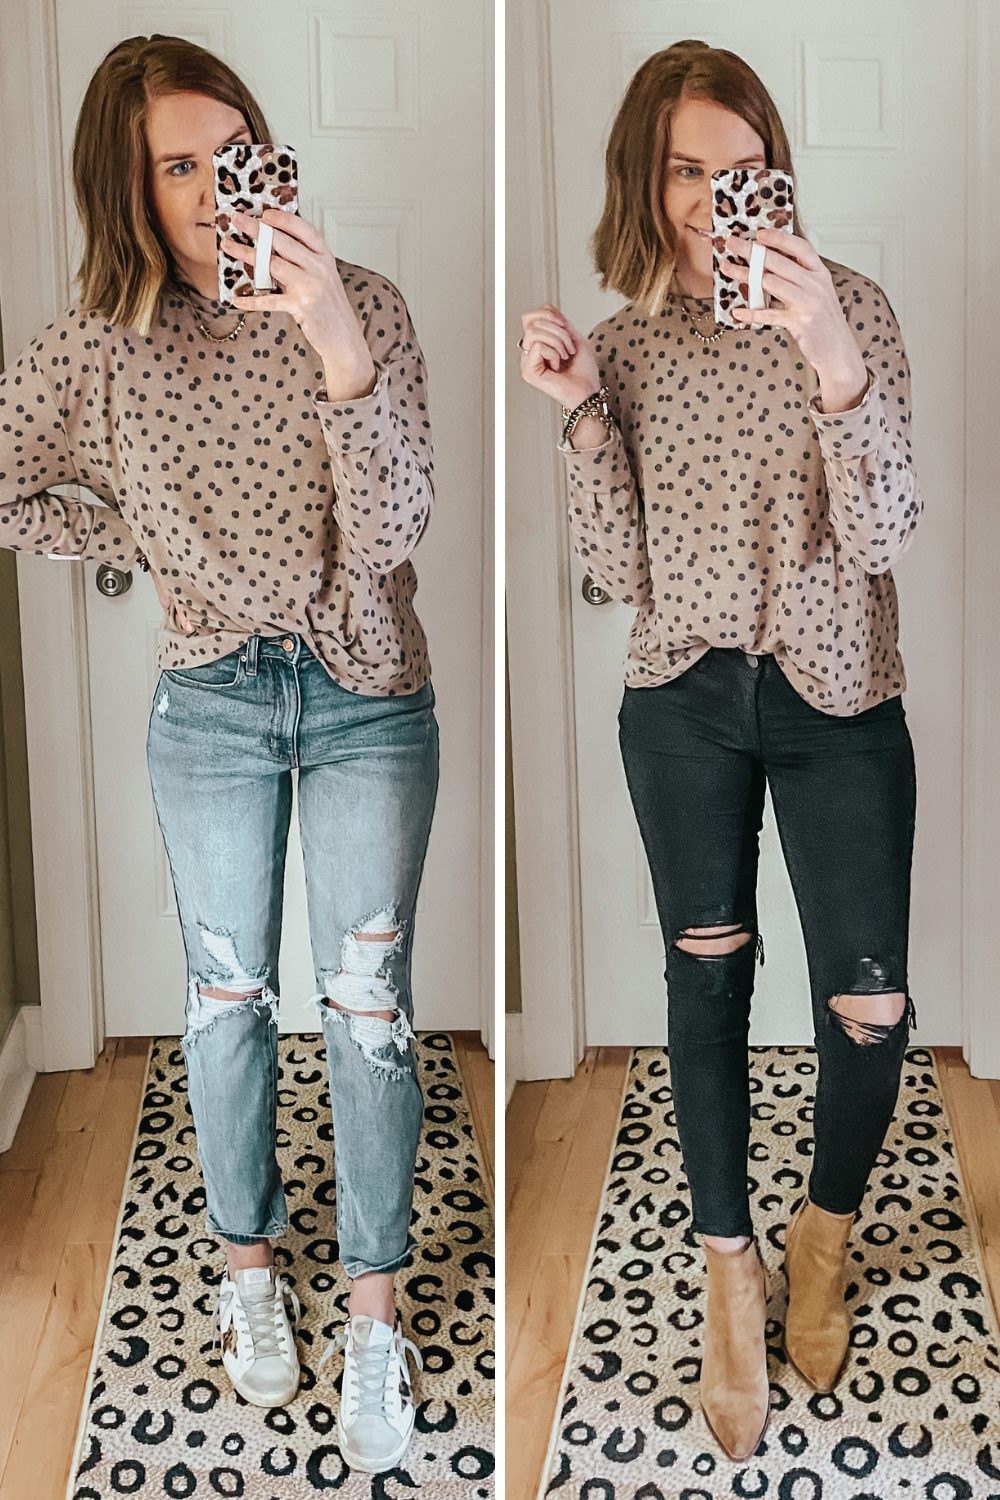 cozy and cute fall outfit ideas from walmart, plush knit dotted top